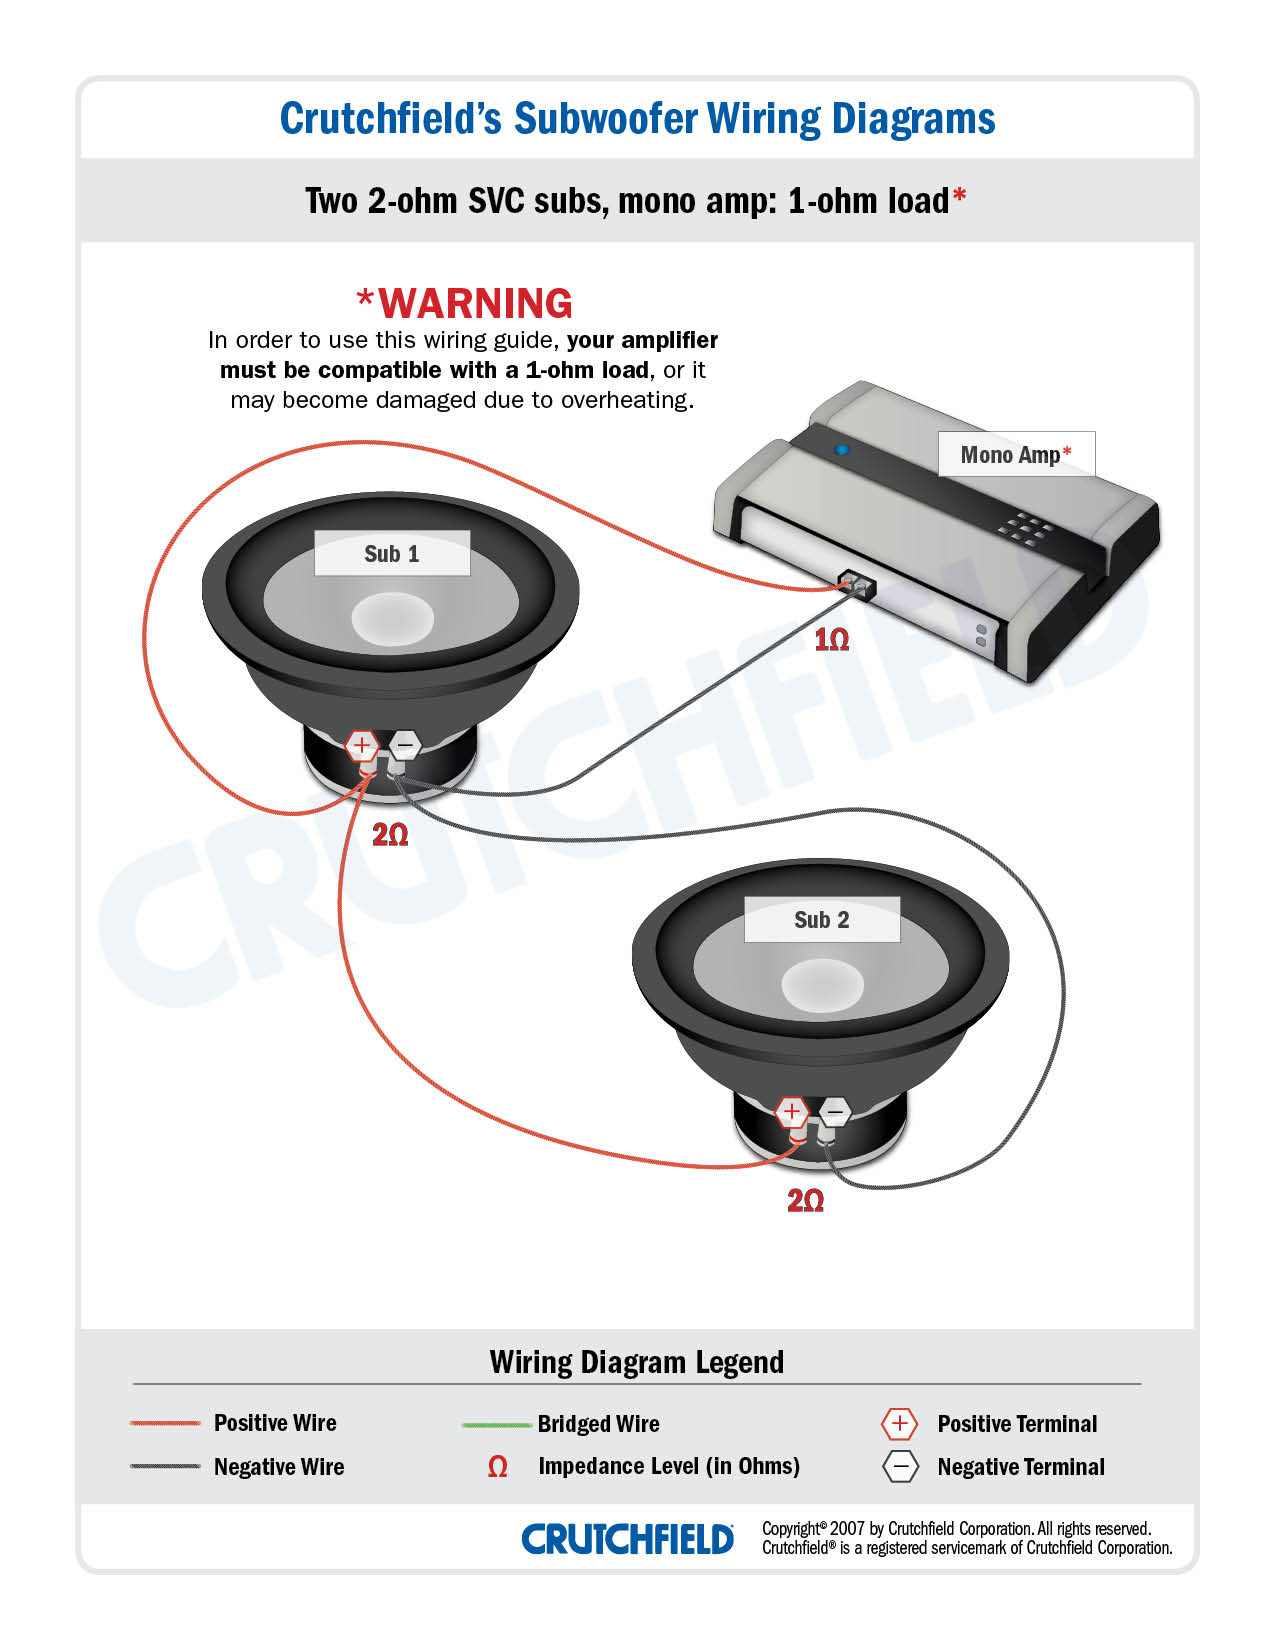 subwoofer wiring diagrams rh crutchfield com sub wiring diagram for 2016 ram 1500 Home Subwoofer Wiring